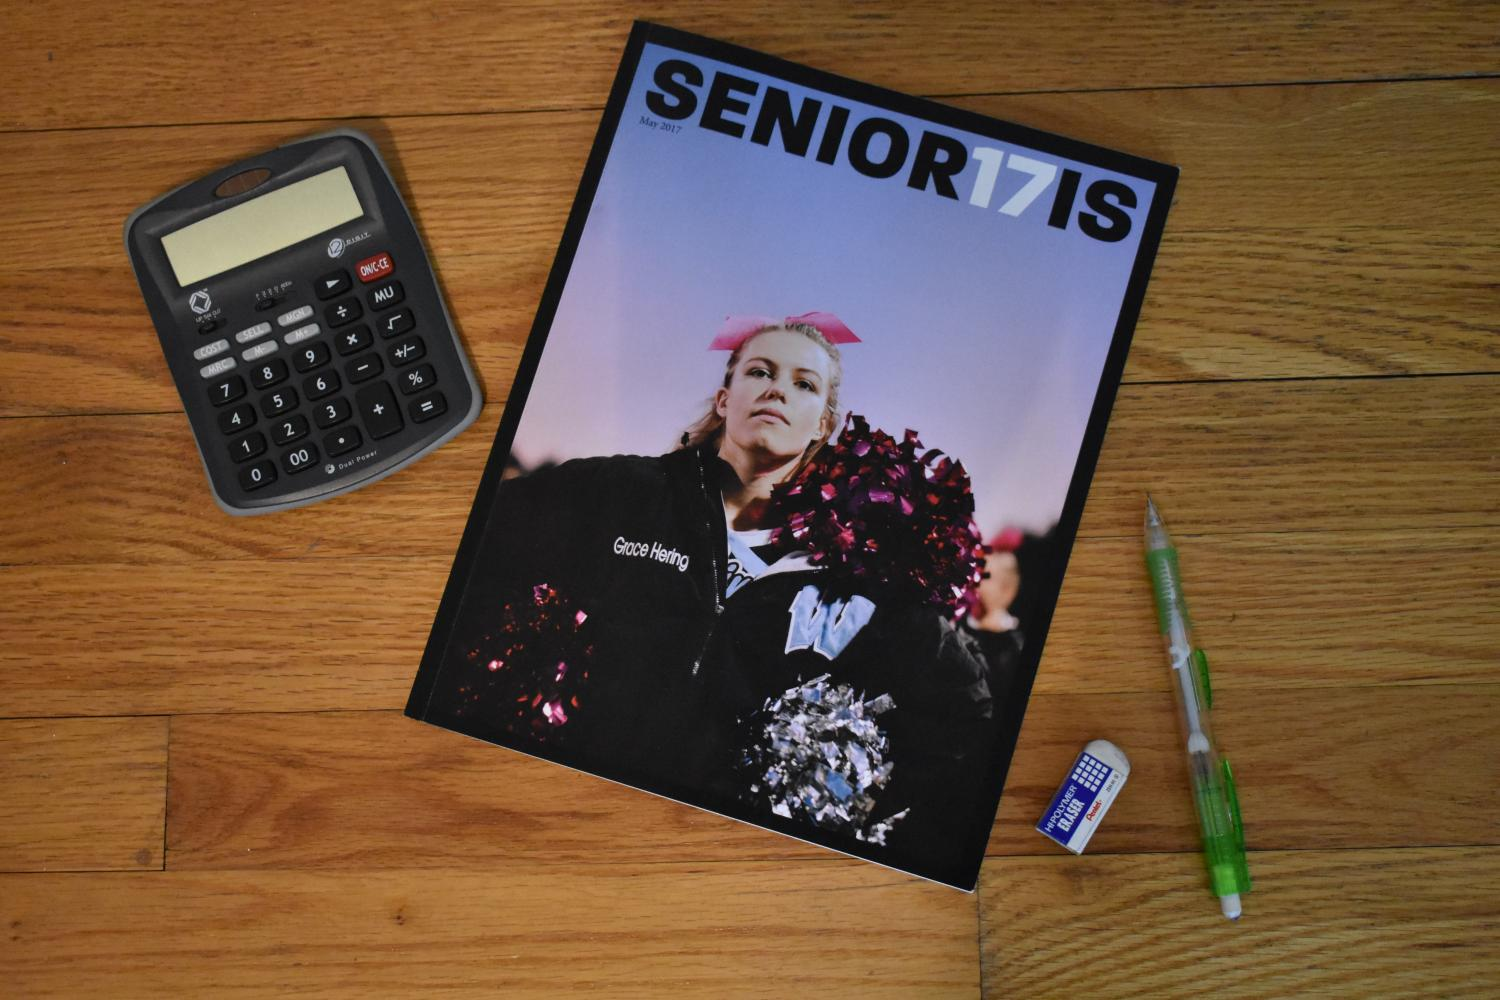 The+magazine+titled+%22SENIOR17IS%22+features+cheerleader+Grace+Hering+at+a+football+game+on+the+cover.+Castro+designed+the+magazine+using+the+program+InDesign+and+finished+it+finished+in+May.+Photo+by+Mira+Dwyer.+